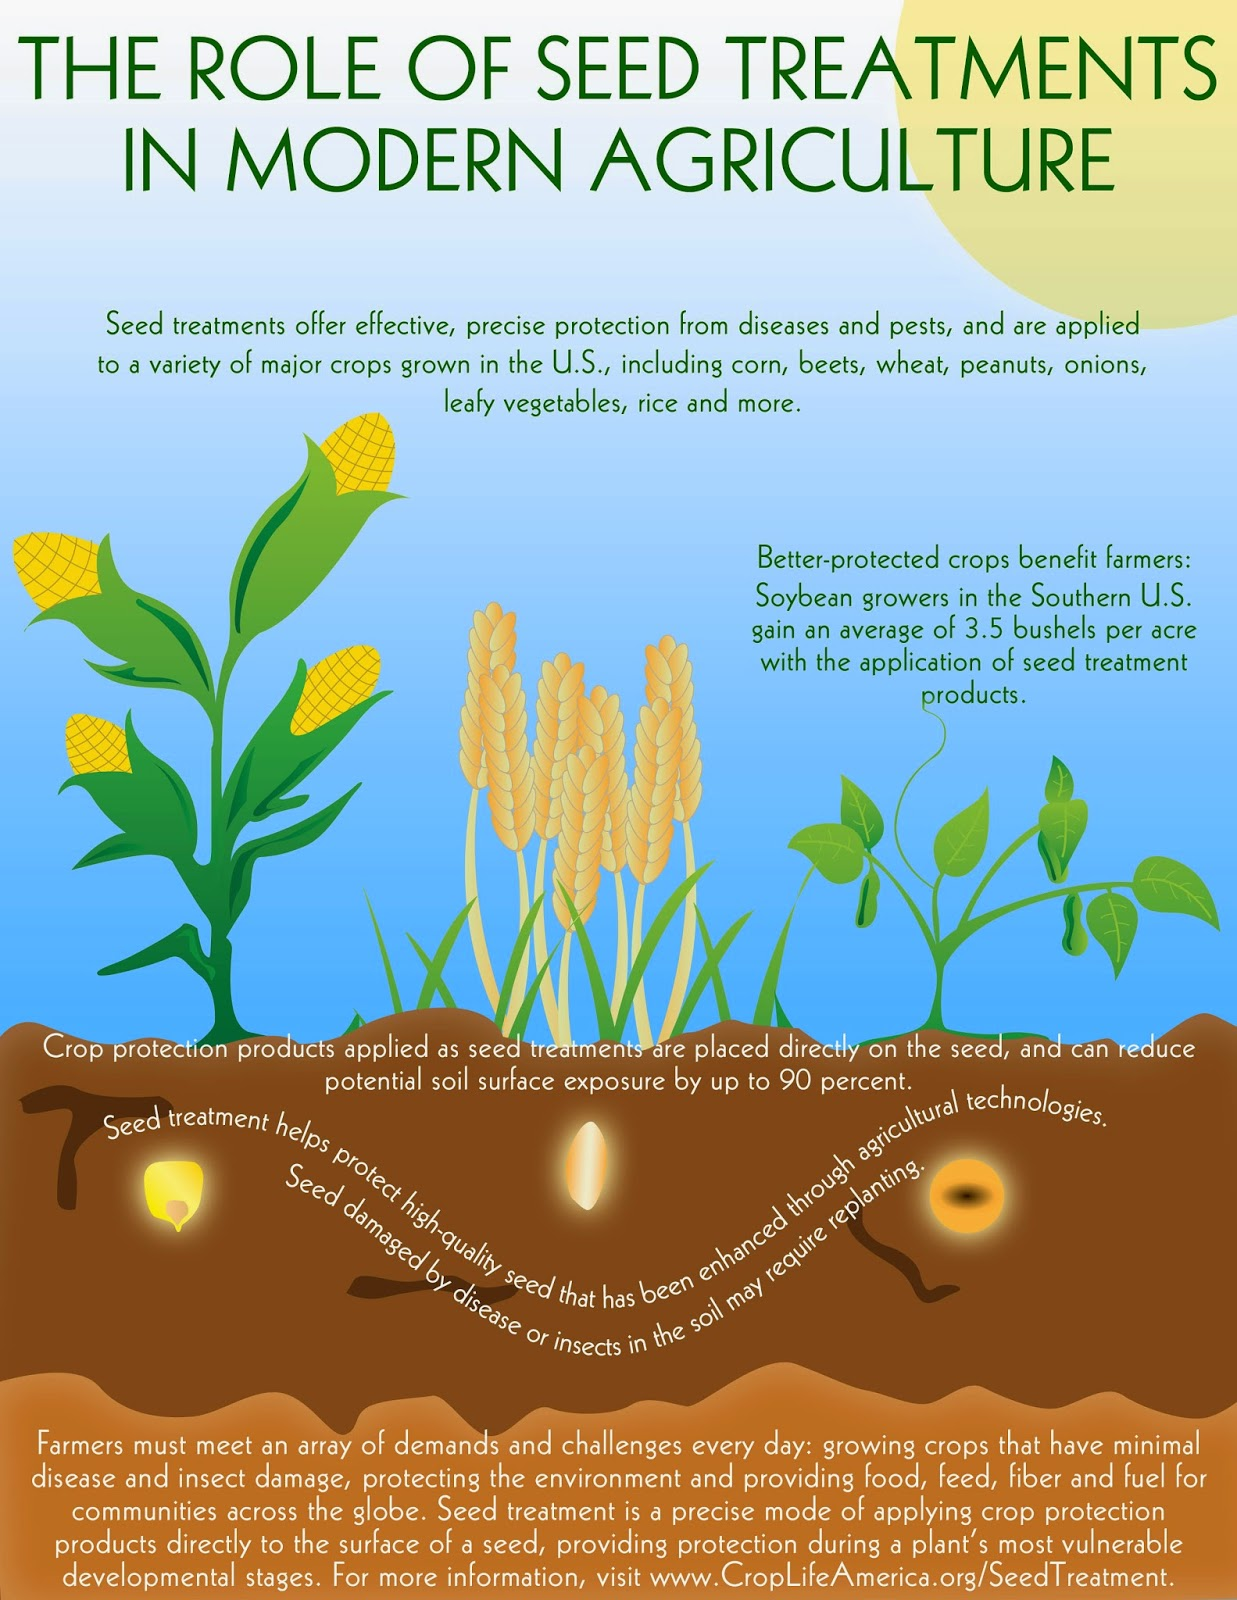 Modern Seed Treatment via CropLife America